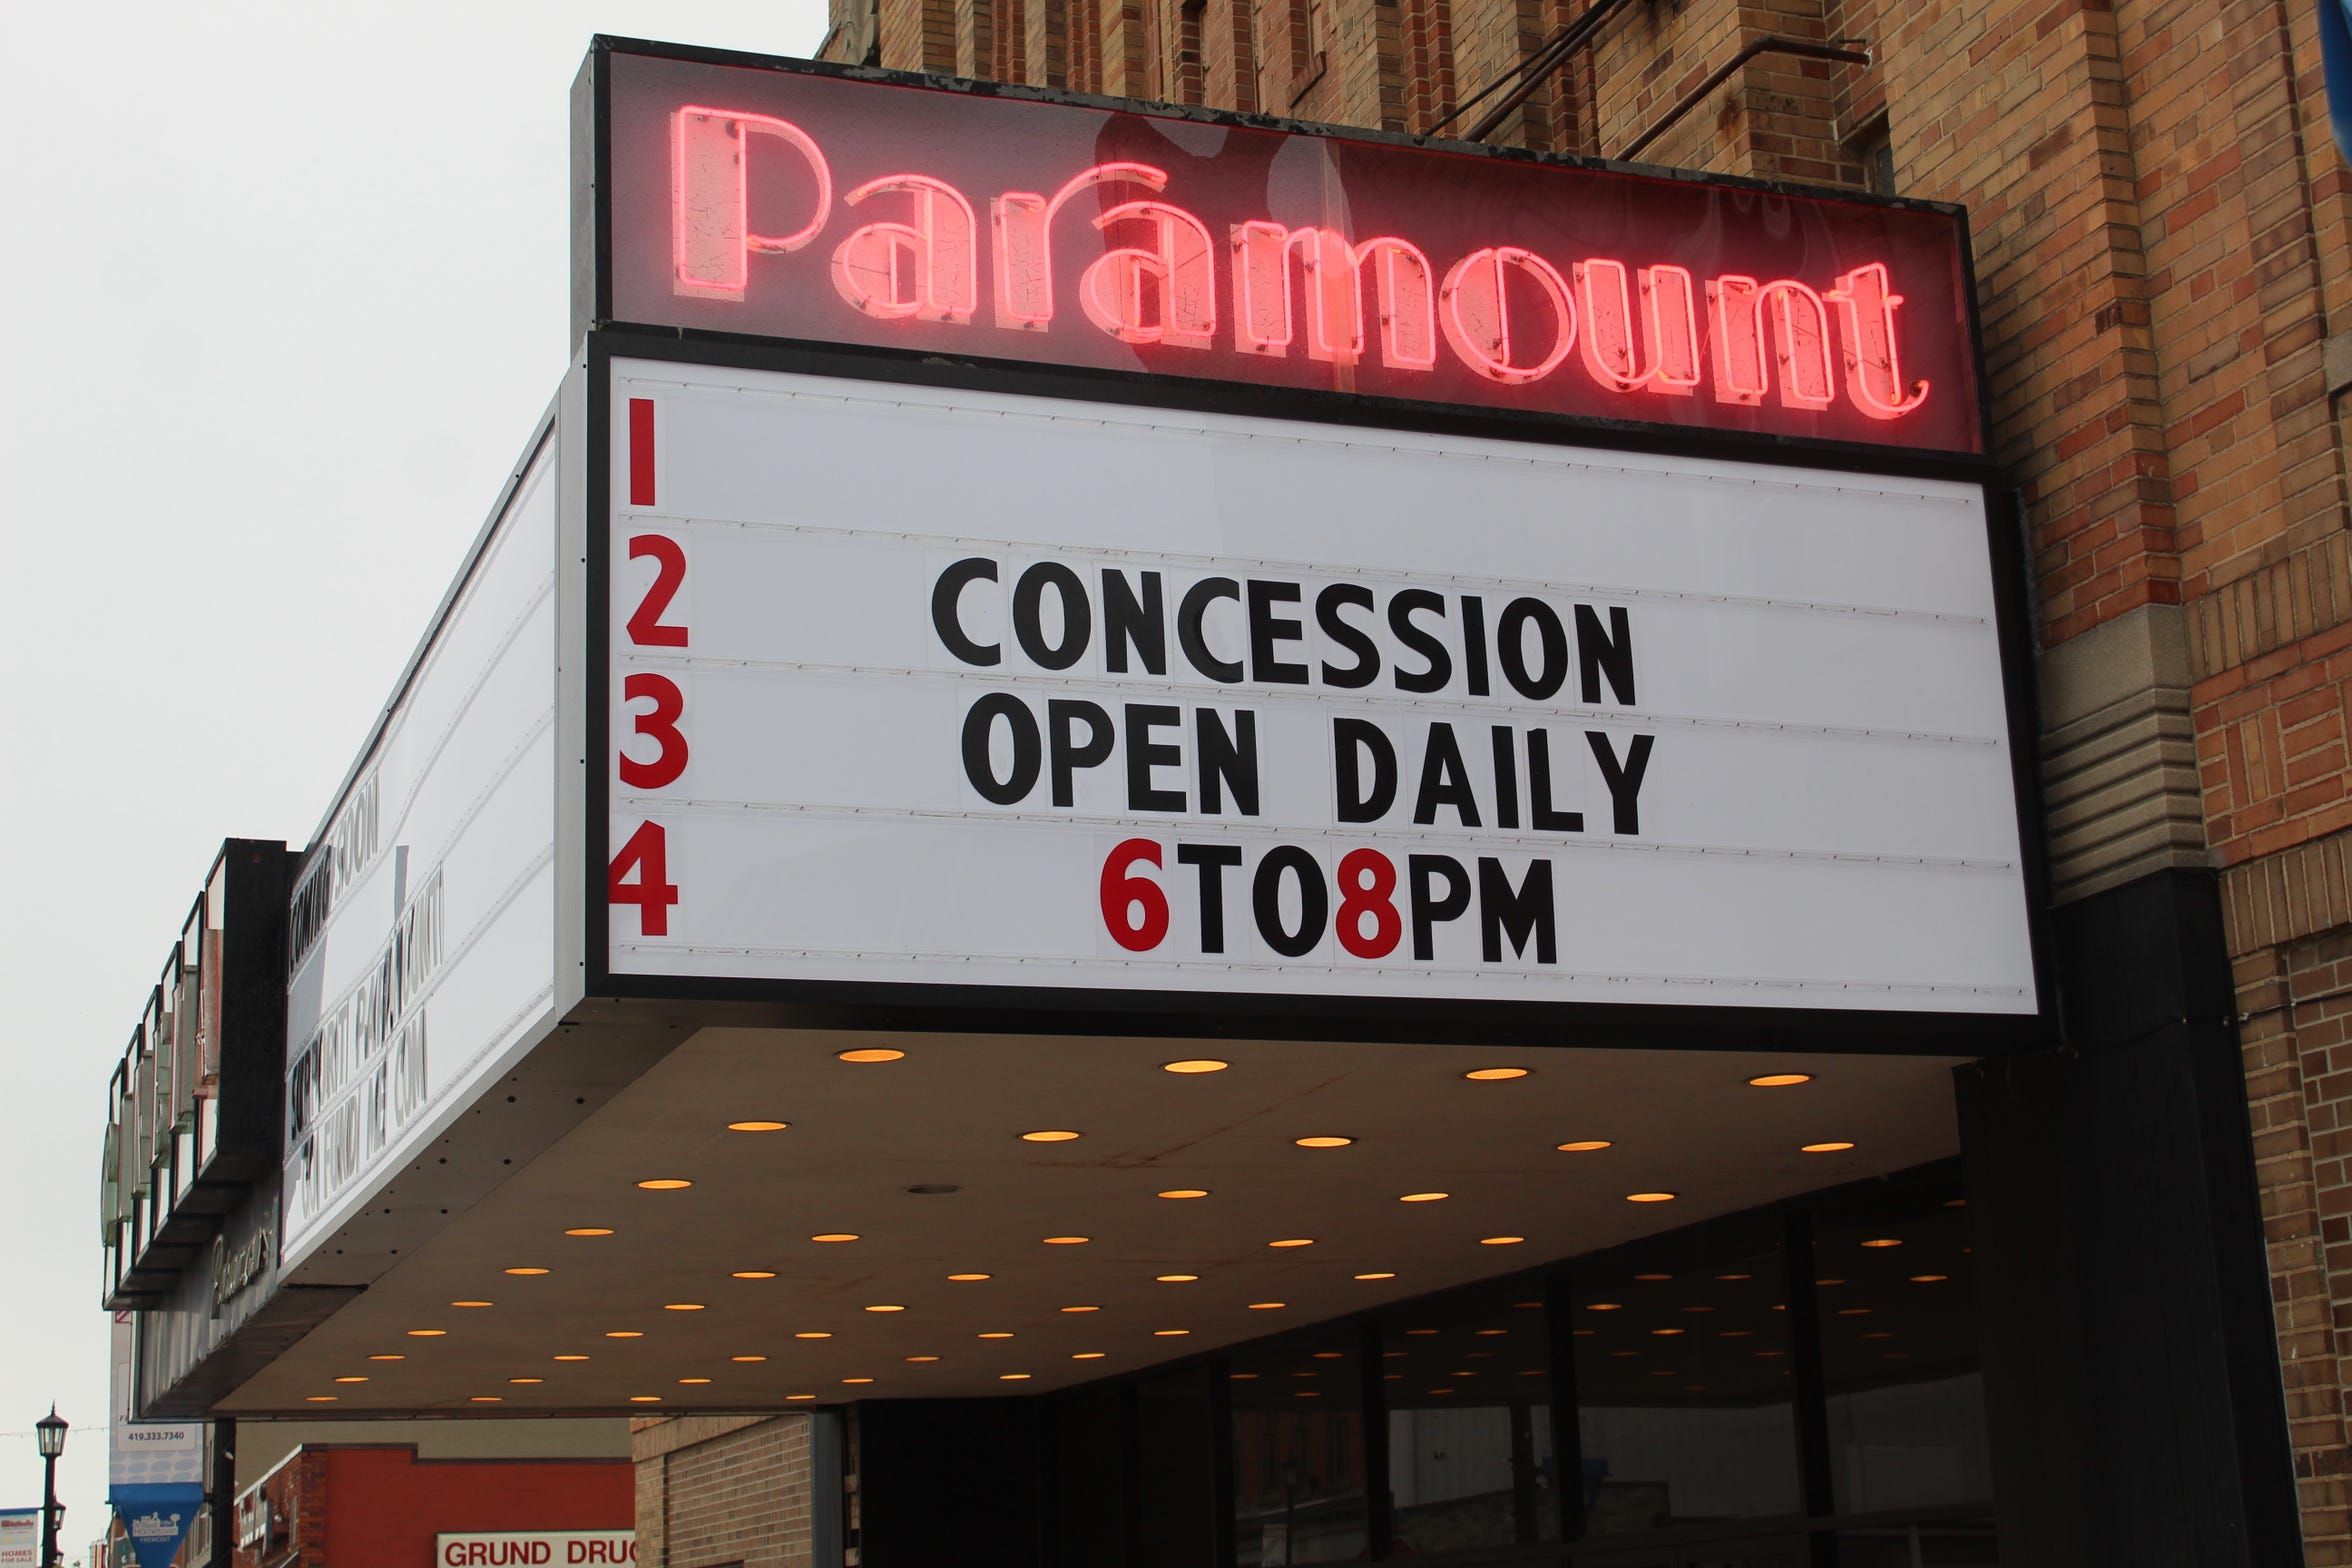 Paramount Cinema in downtown Fremont is keeping its concession stand open two hours a night for residents that want to purchase popcorn and candy, said Kristie Bilger, Downtown Fremont, Inc.'s executive director.